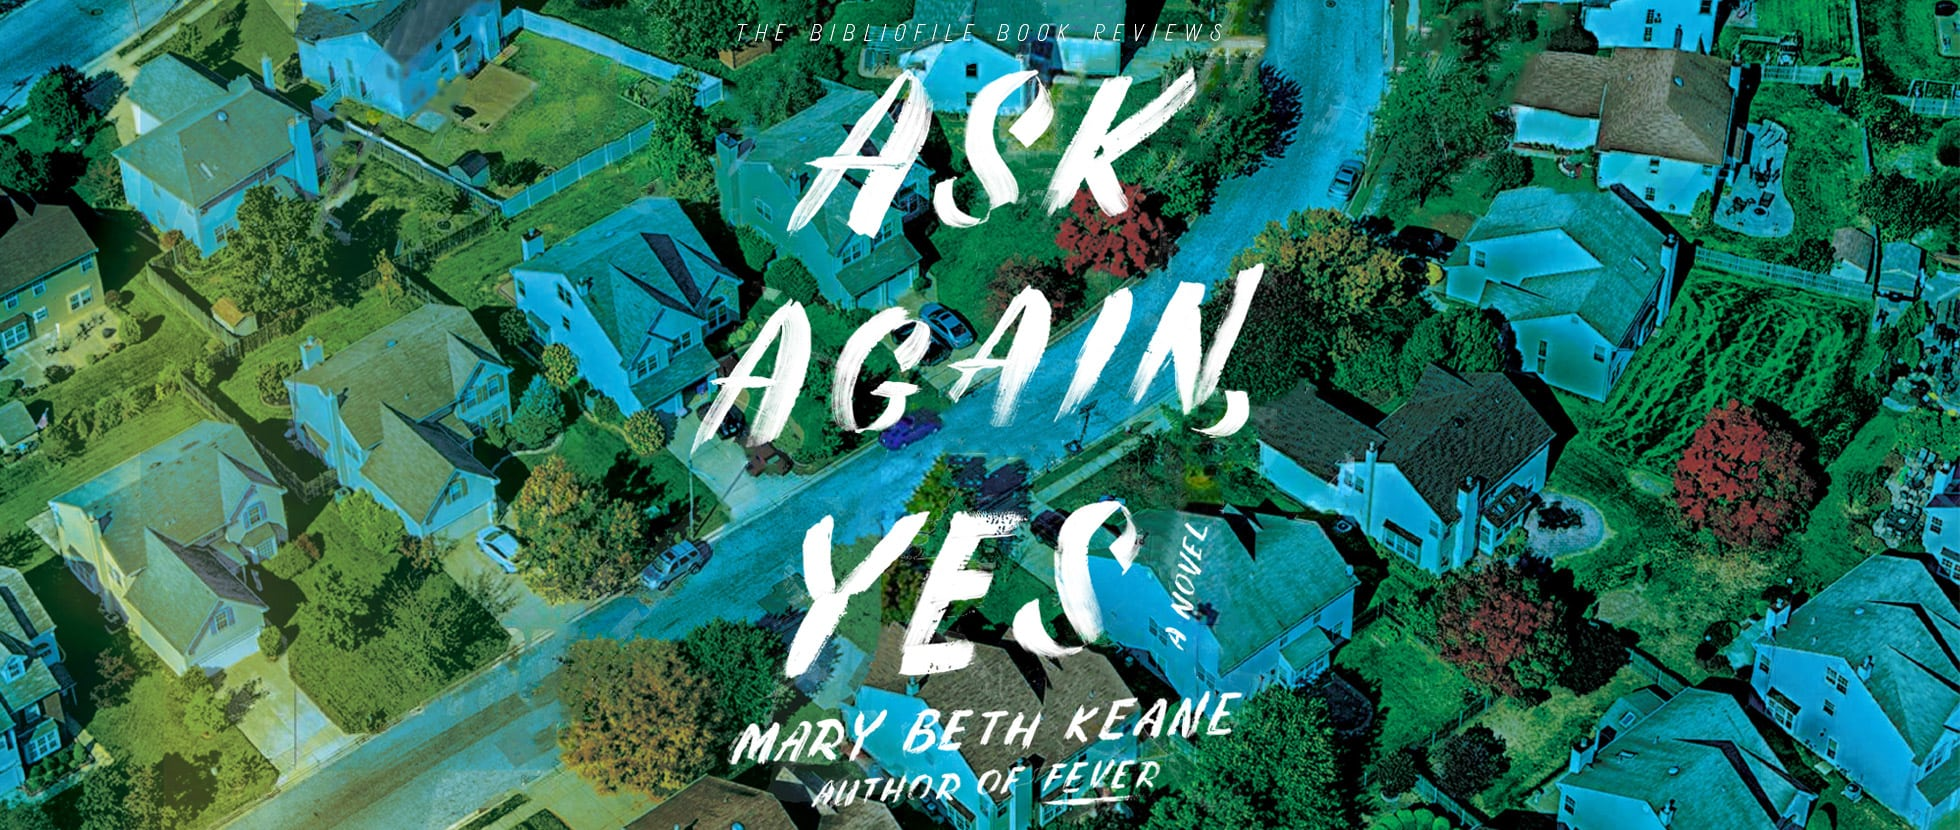 ask again yes mary beth keane summary review